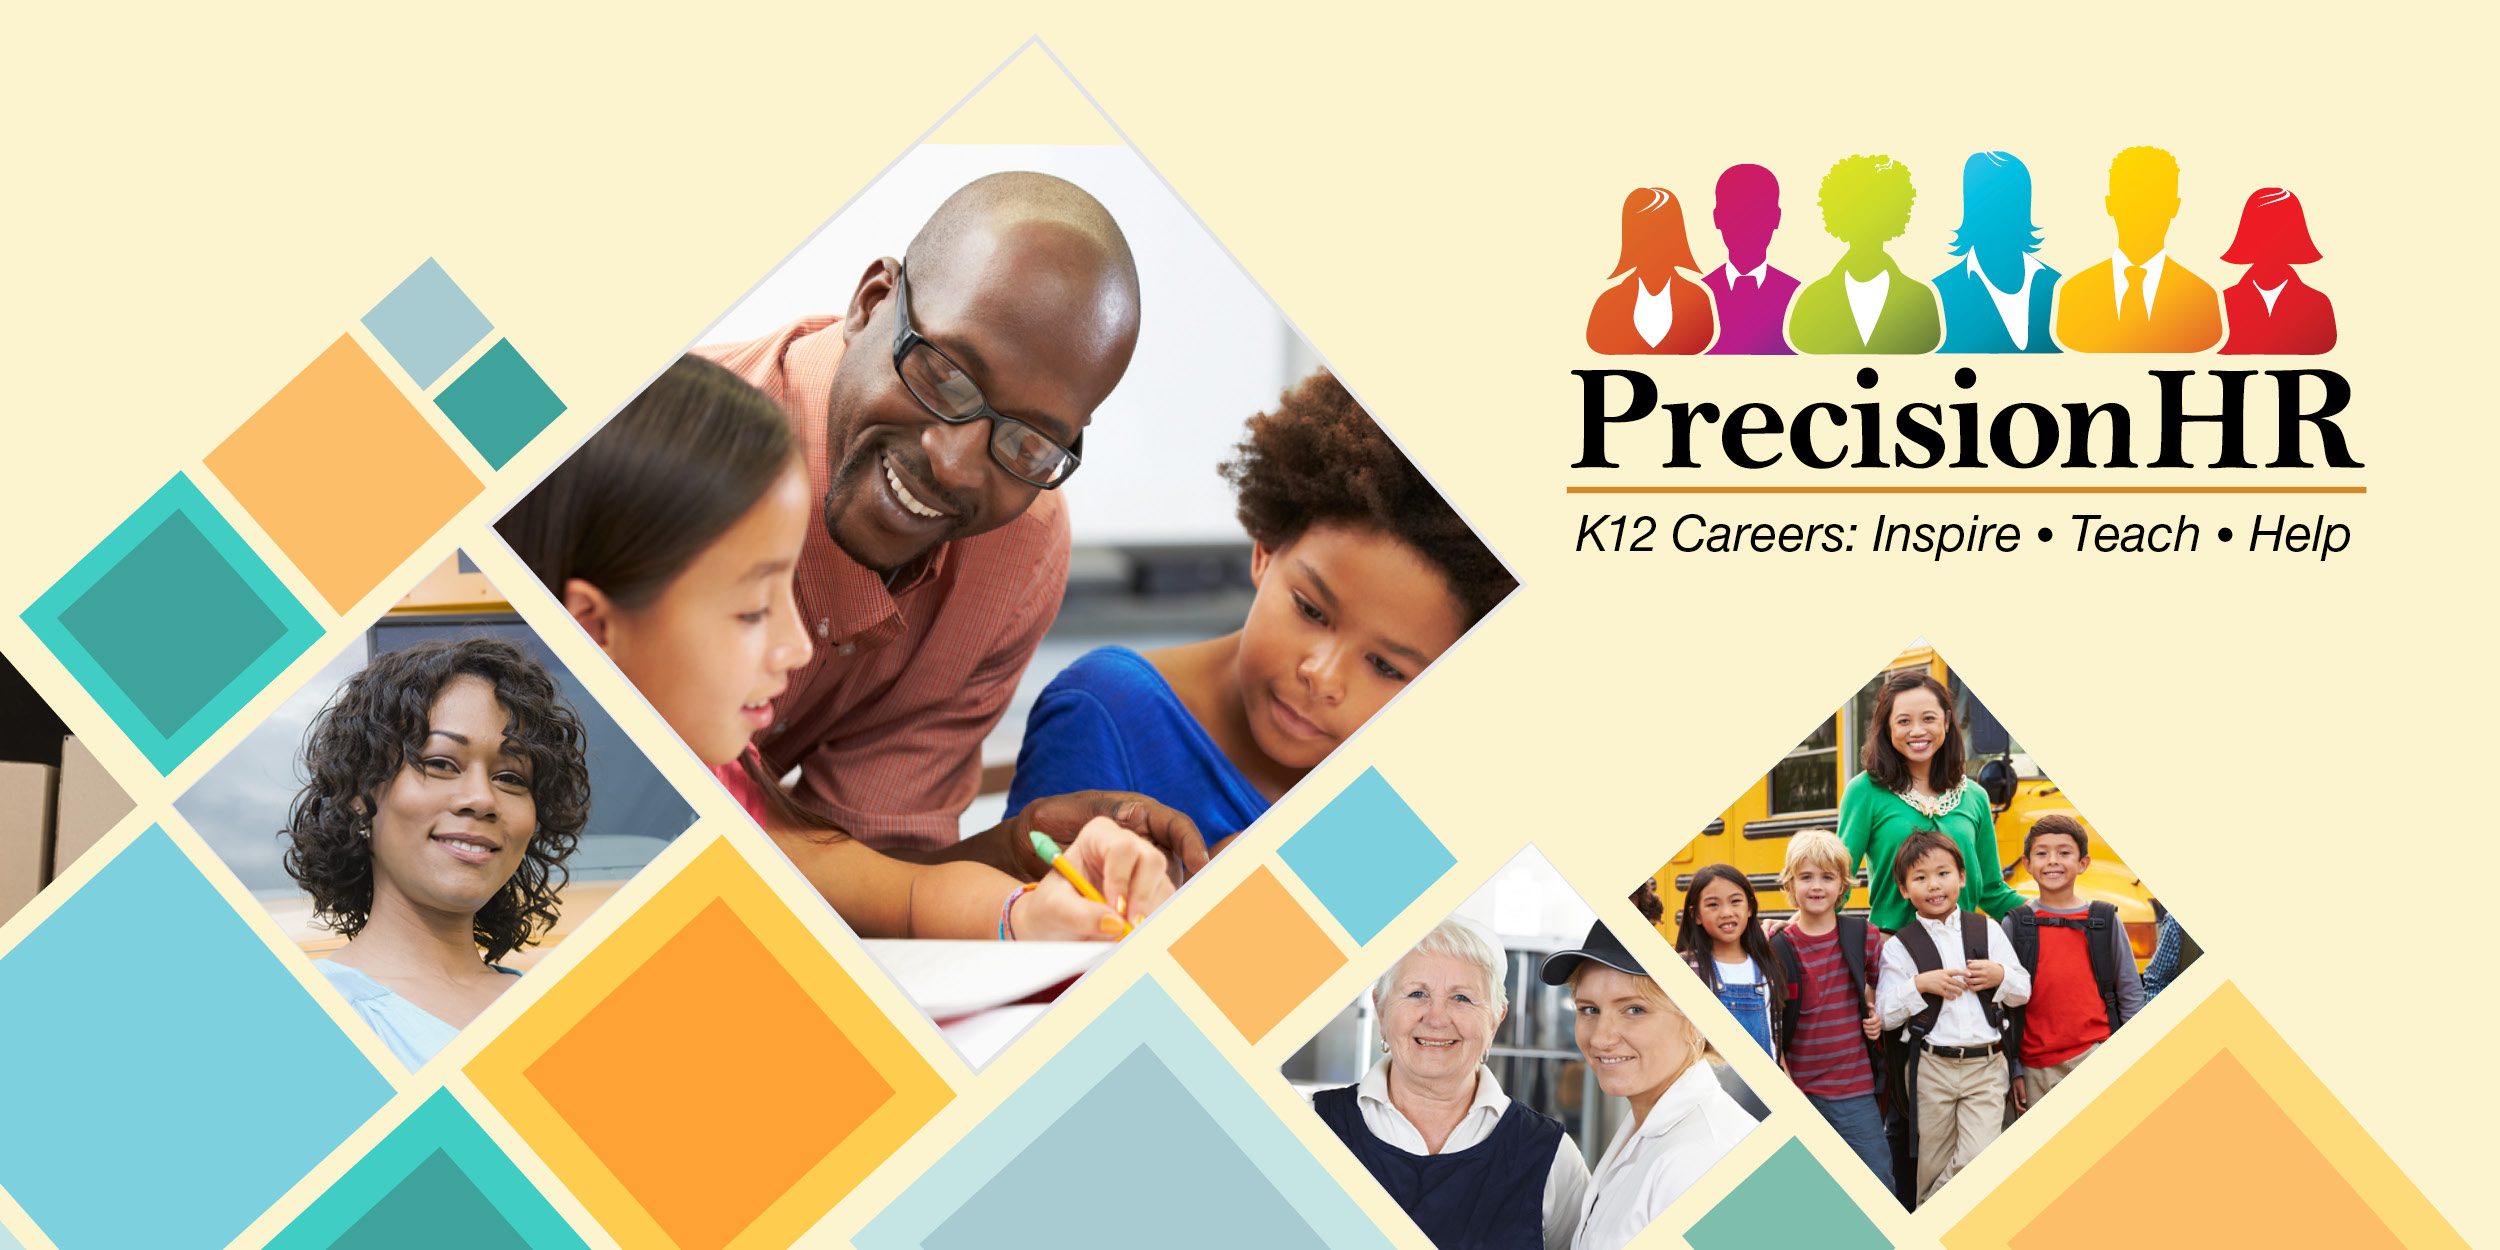 Precision HR - Special Education Teacher banner image